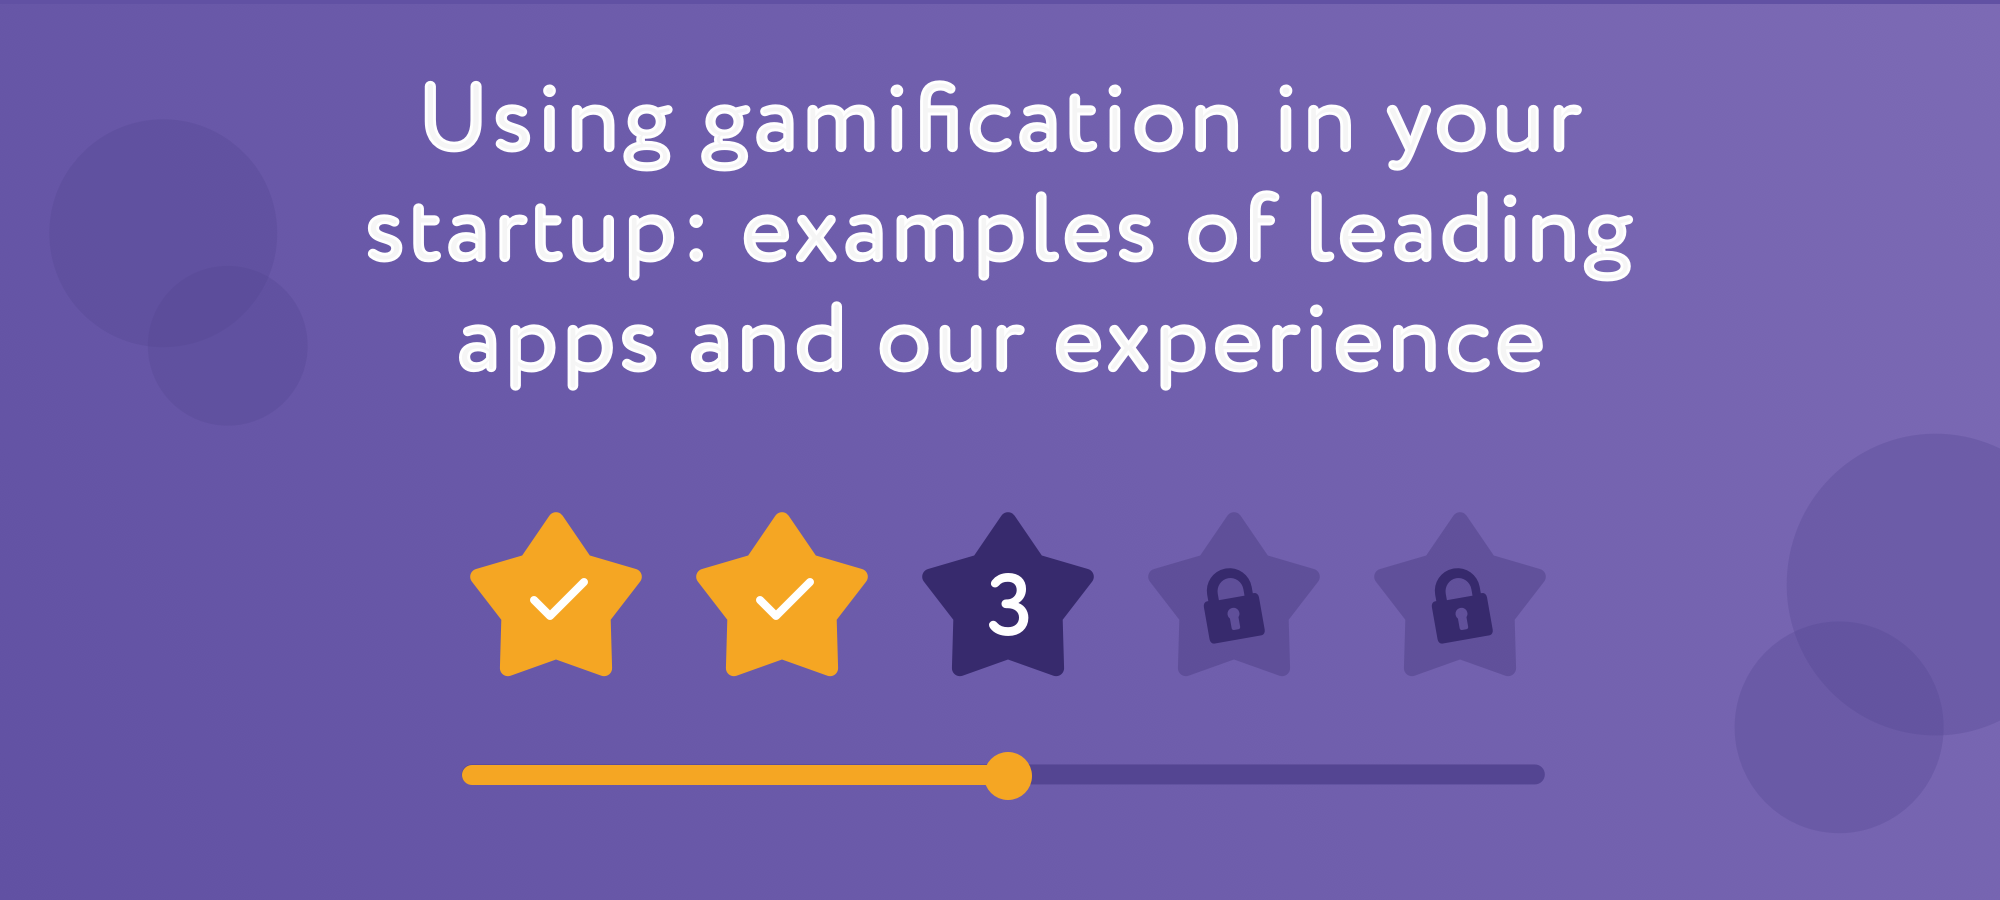 Using Gamification in Your Startup: Examples of Leading Apps and Our Experience